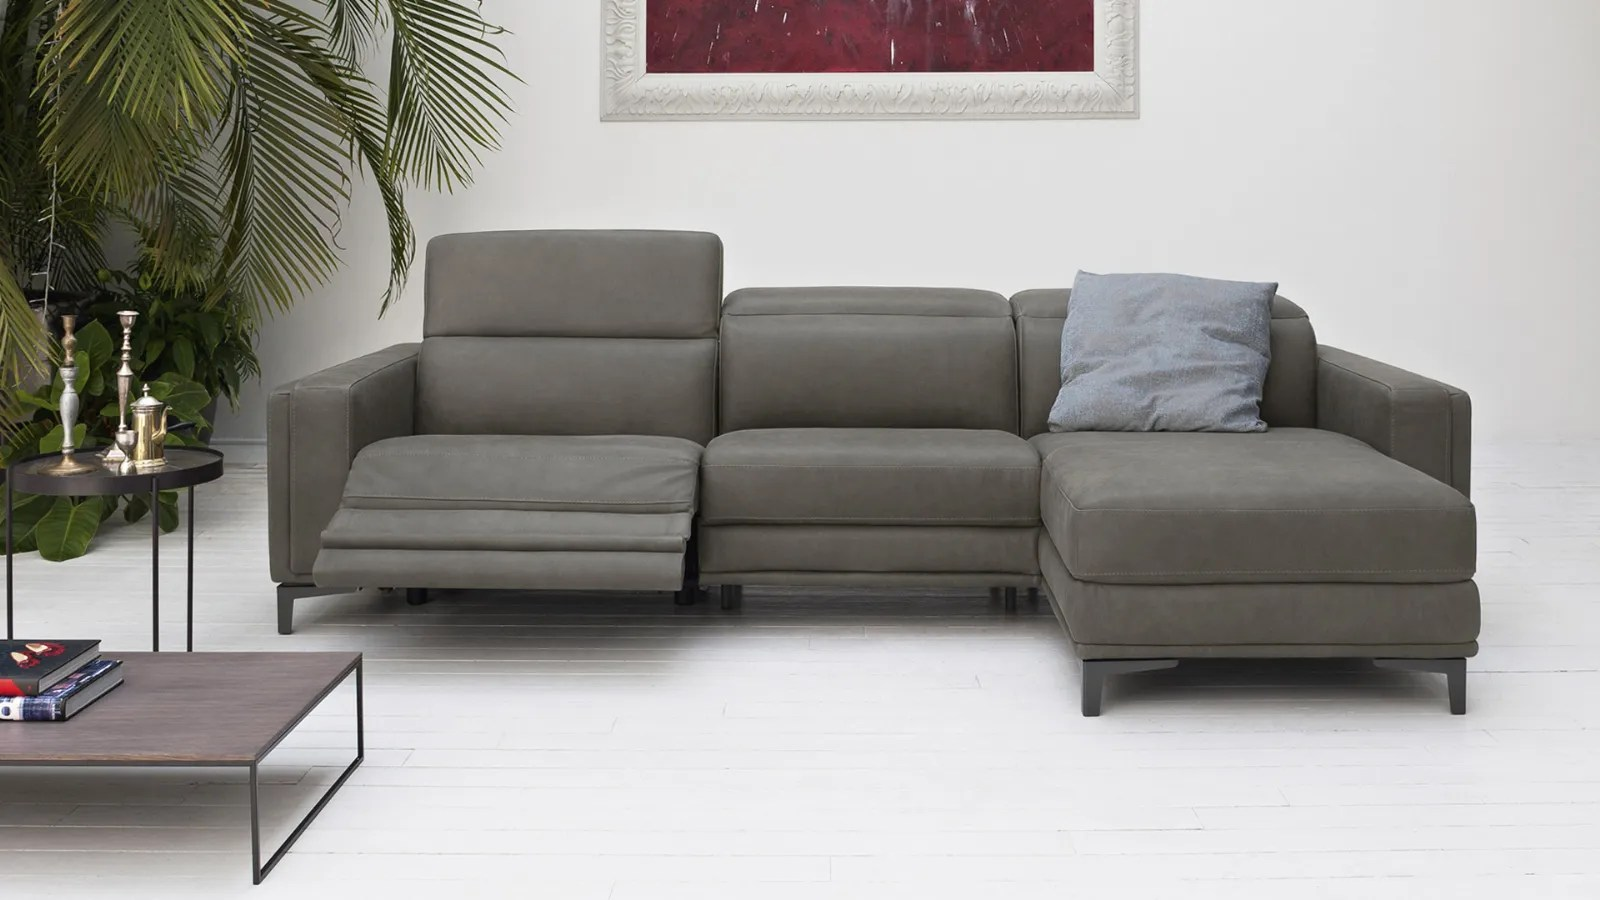 Evoque The Ideal Sofa To Furnish A Loft